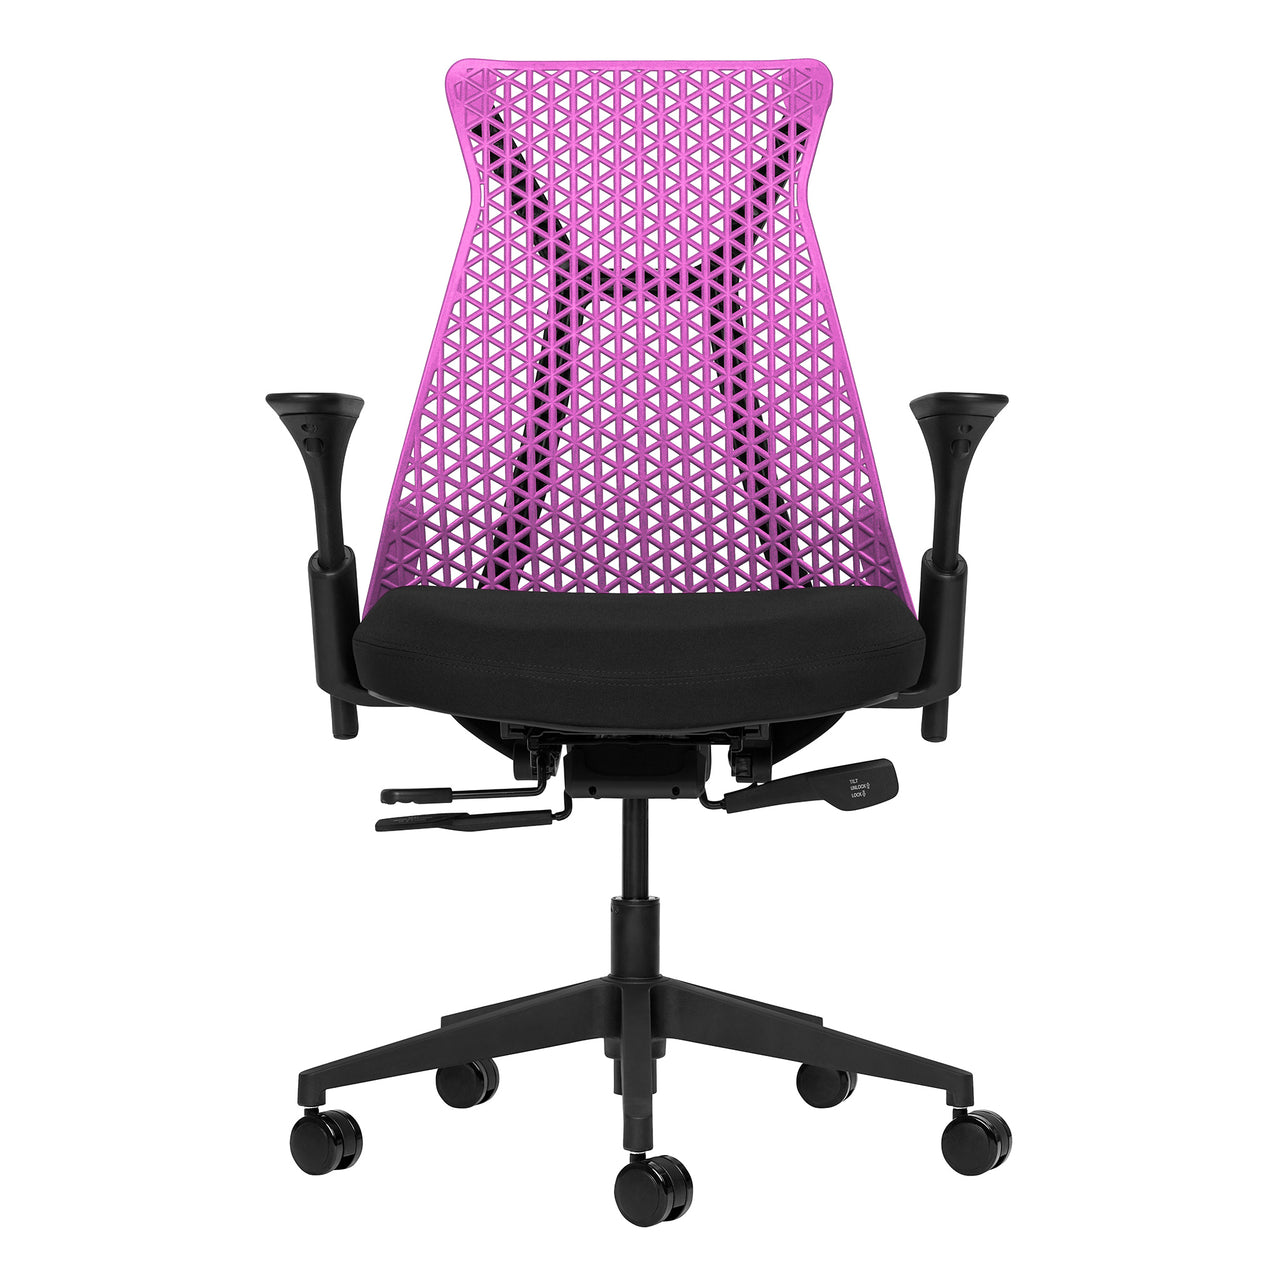 Bowery Management Chair (Magenta/Black)